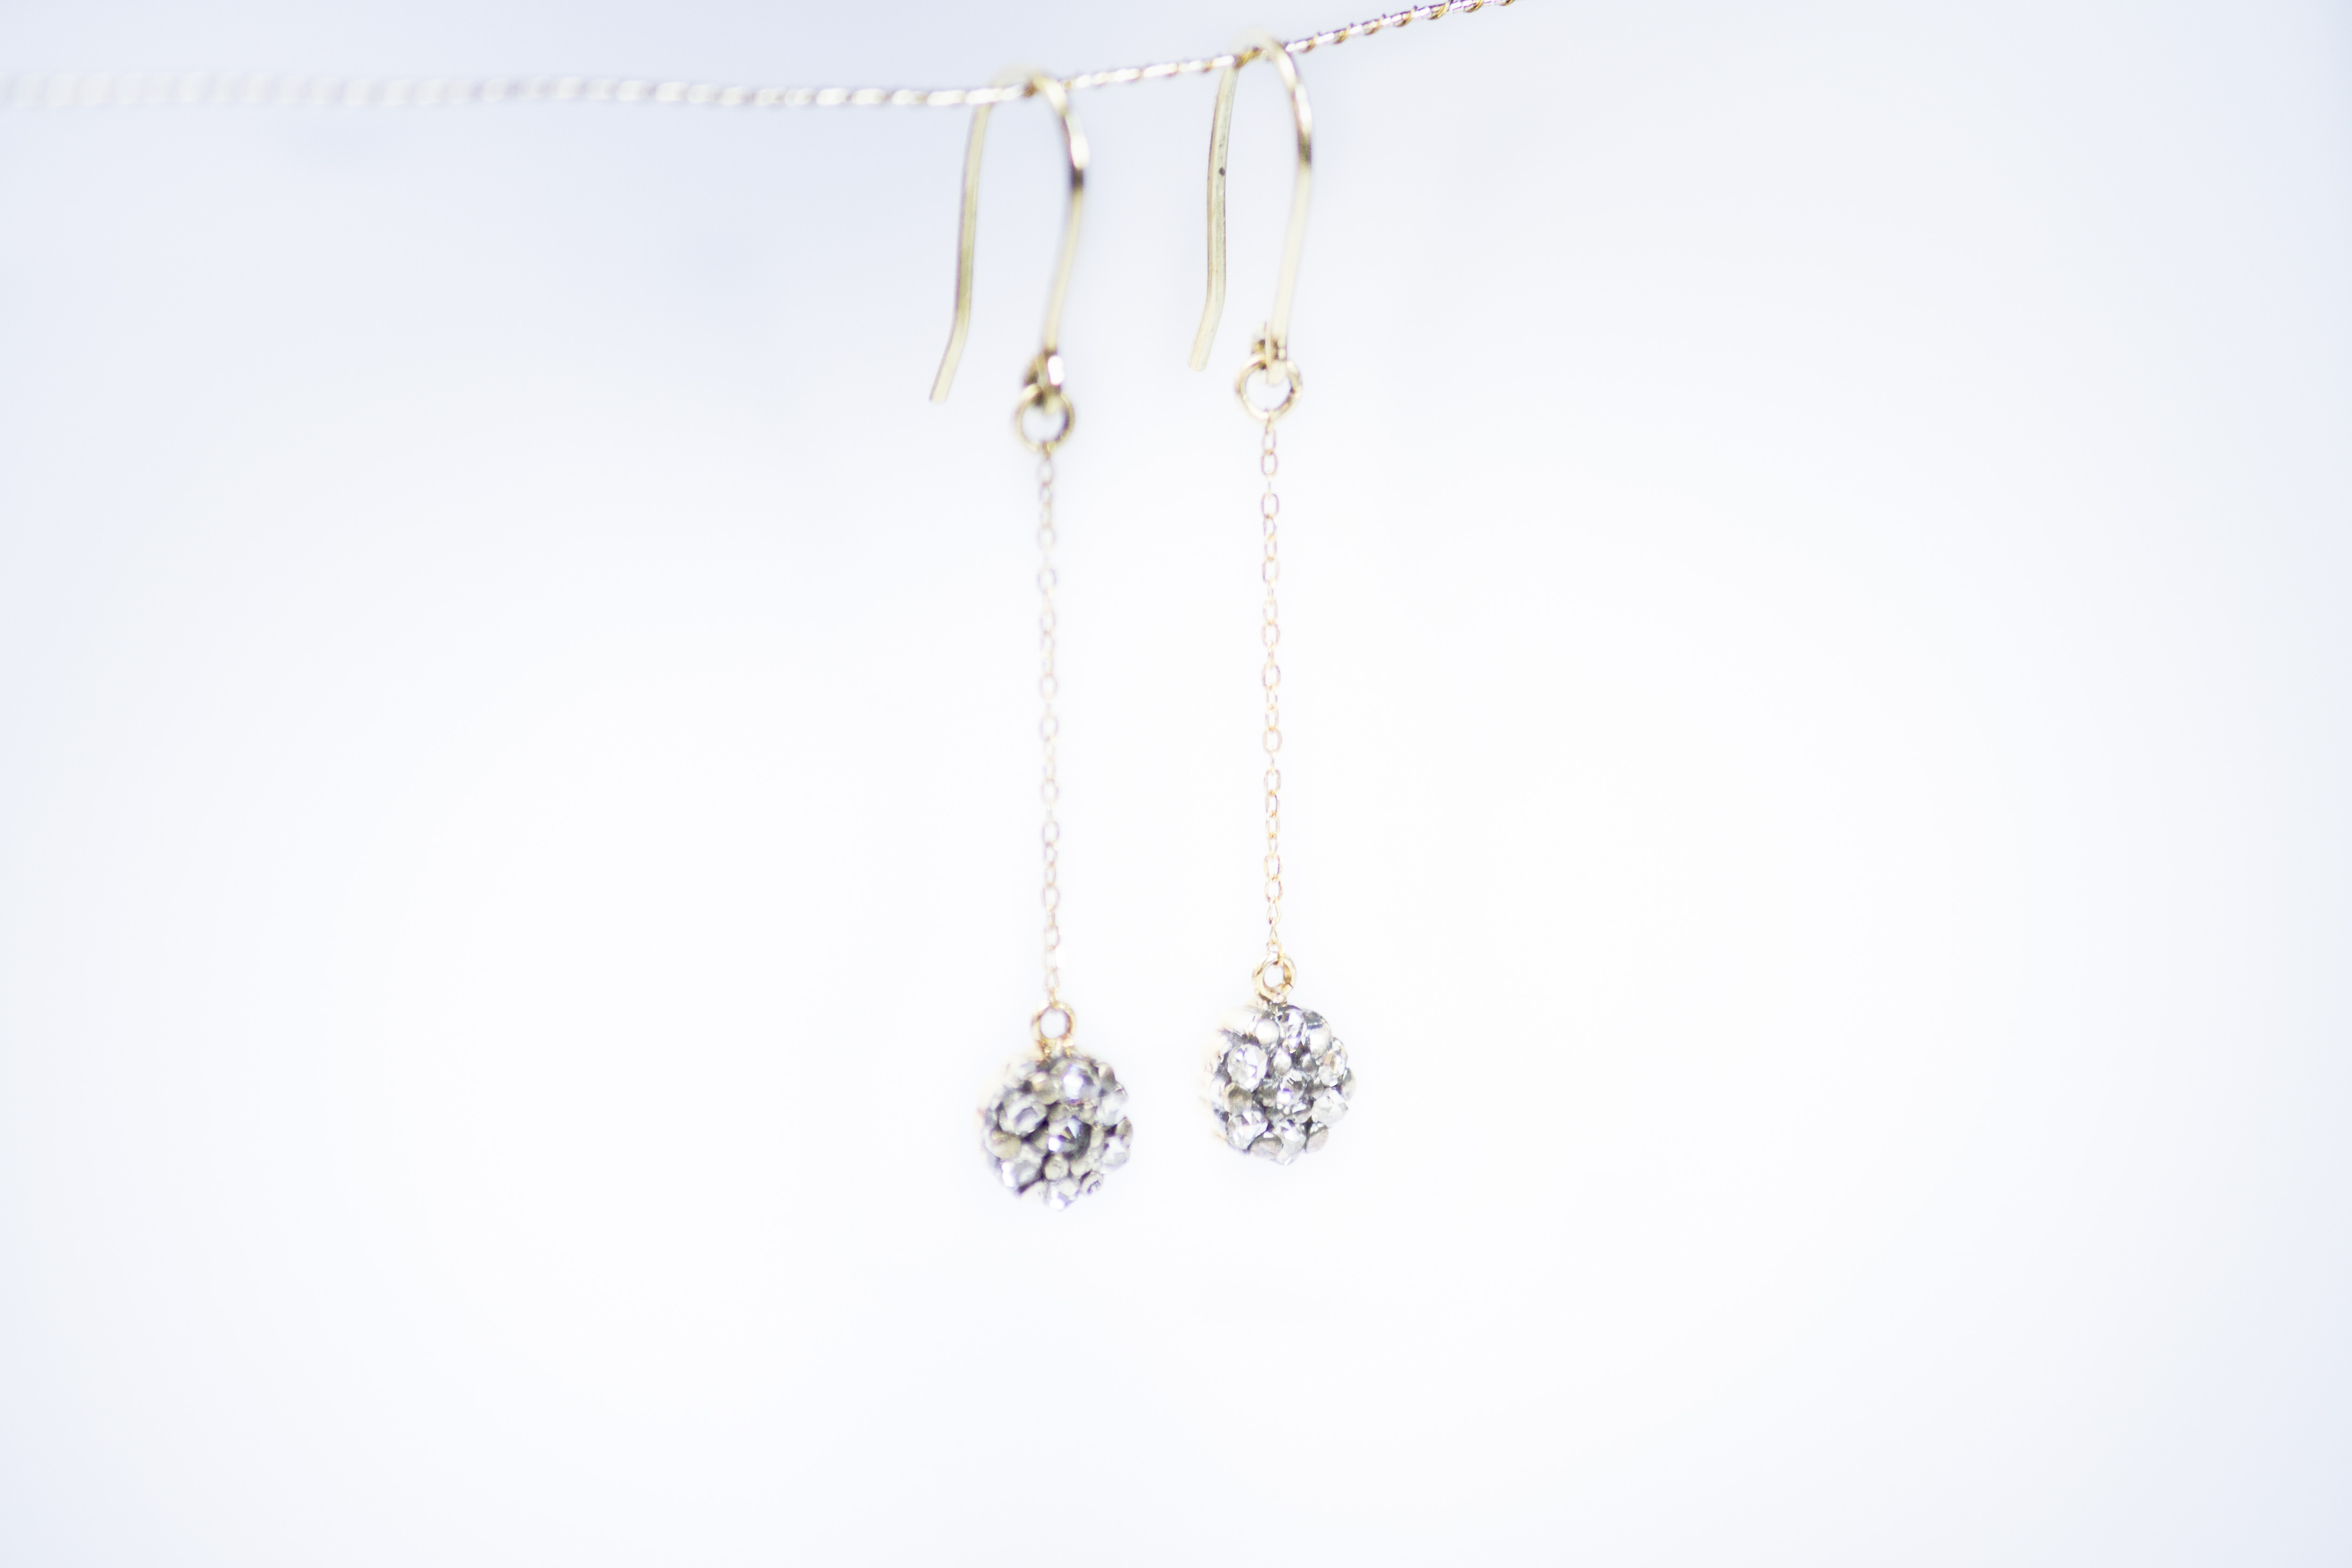 florchainearrings GRID OONA_1